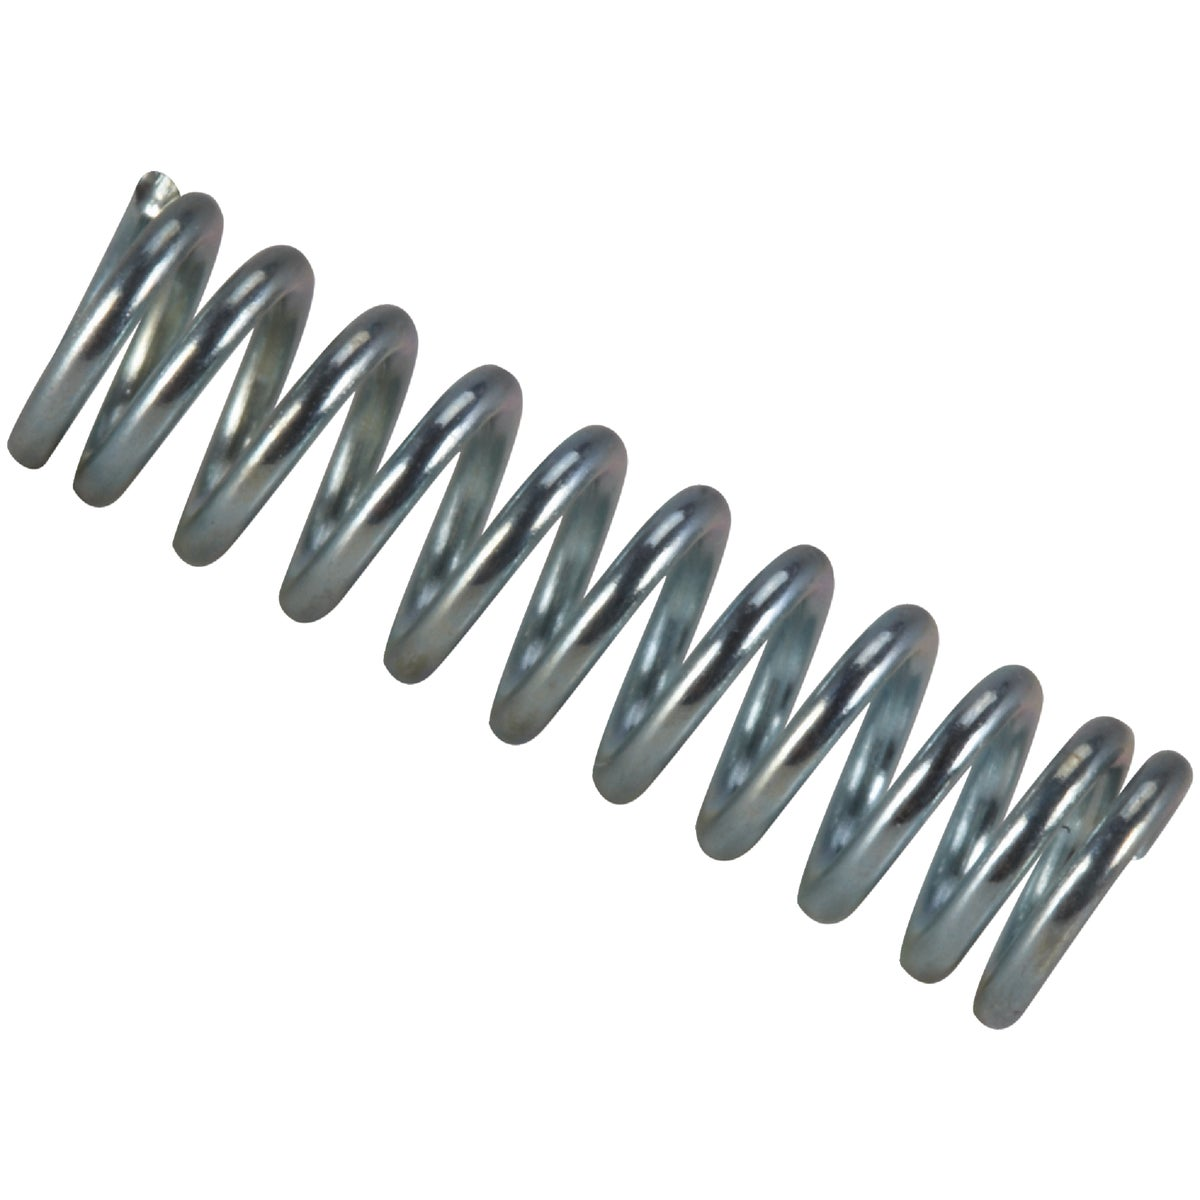 COMPRESSION SPRING - C-556 by Century Spring Corp